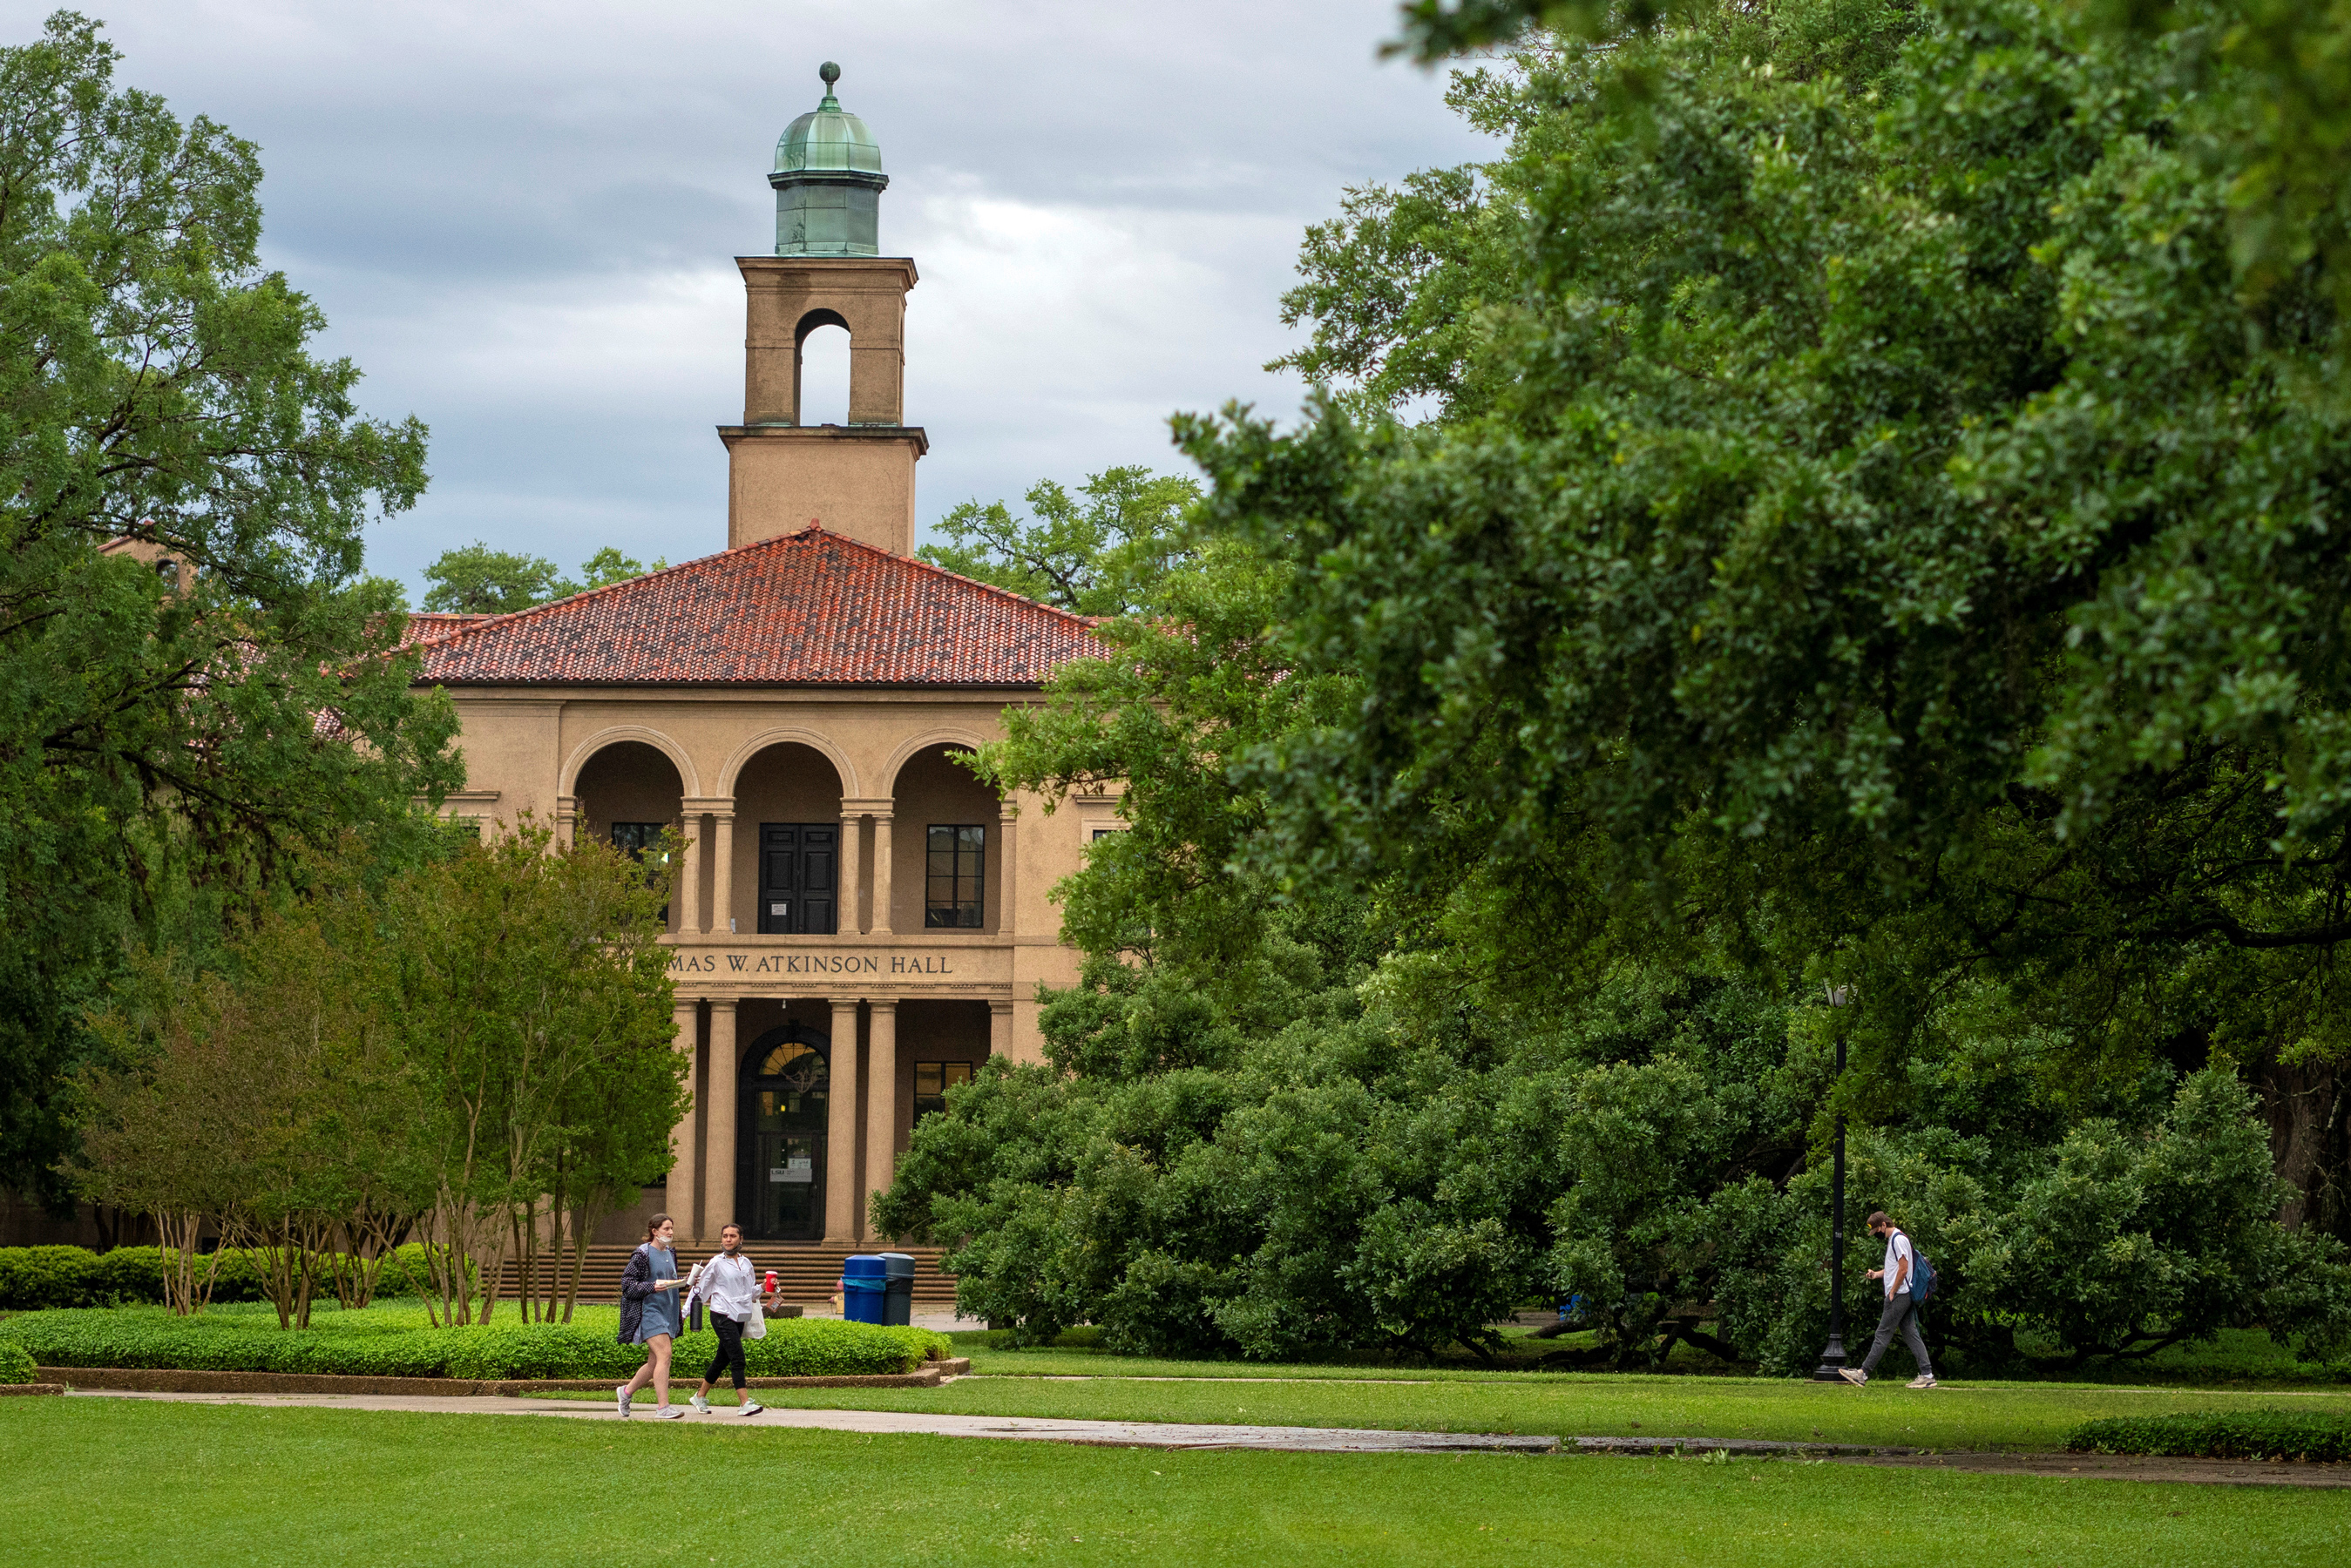 Students walk at the Louisiana State University campus in Baton Rouge, Louisiana, in April 2021.